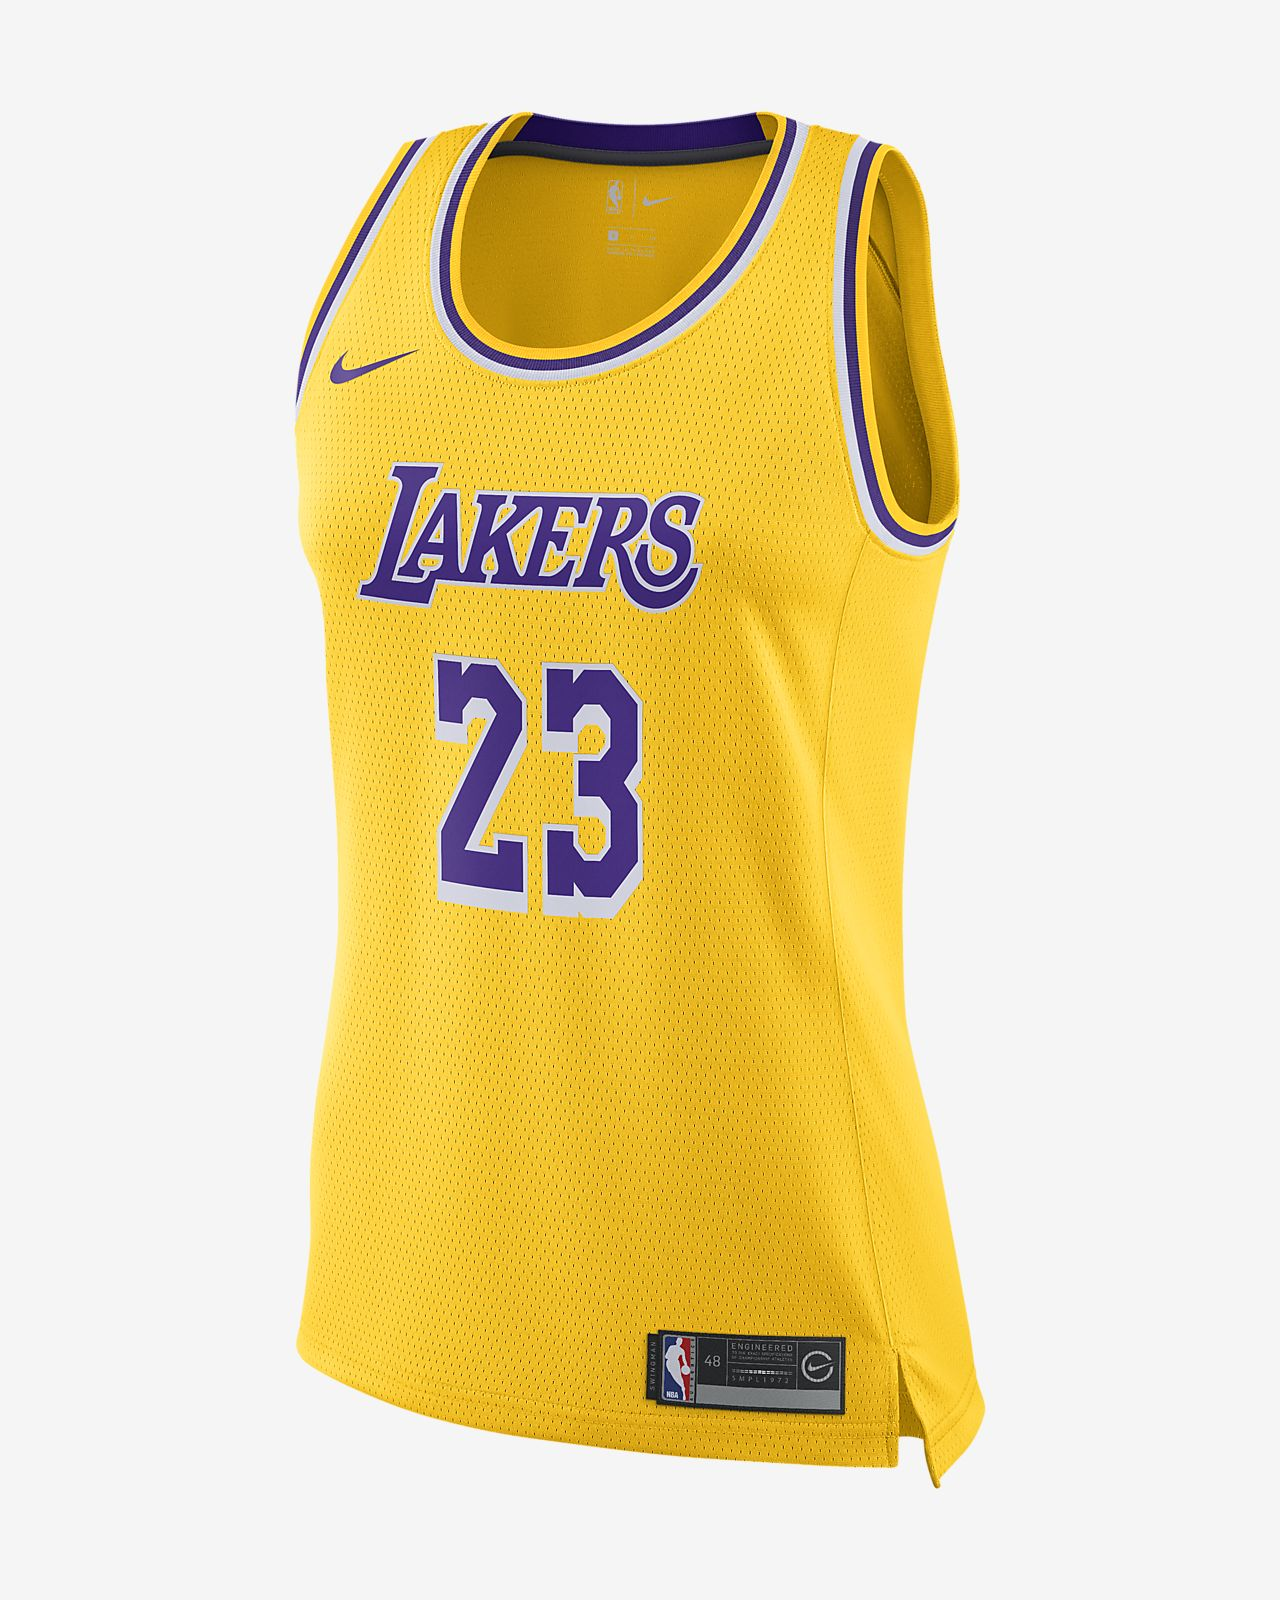 bf5407444fb Women s Nike NBA Connected Jersey. LeBron James Icon Edition Swingman (Los  Angeles Lakers)